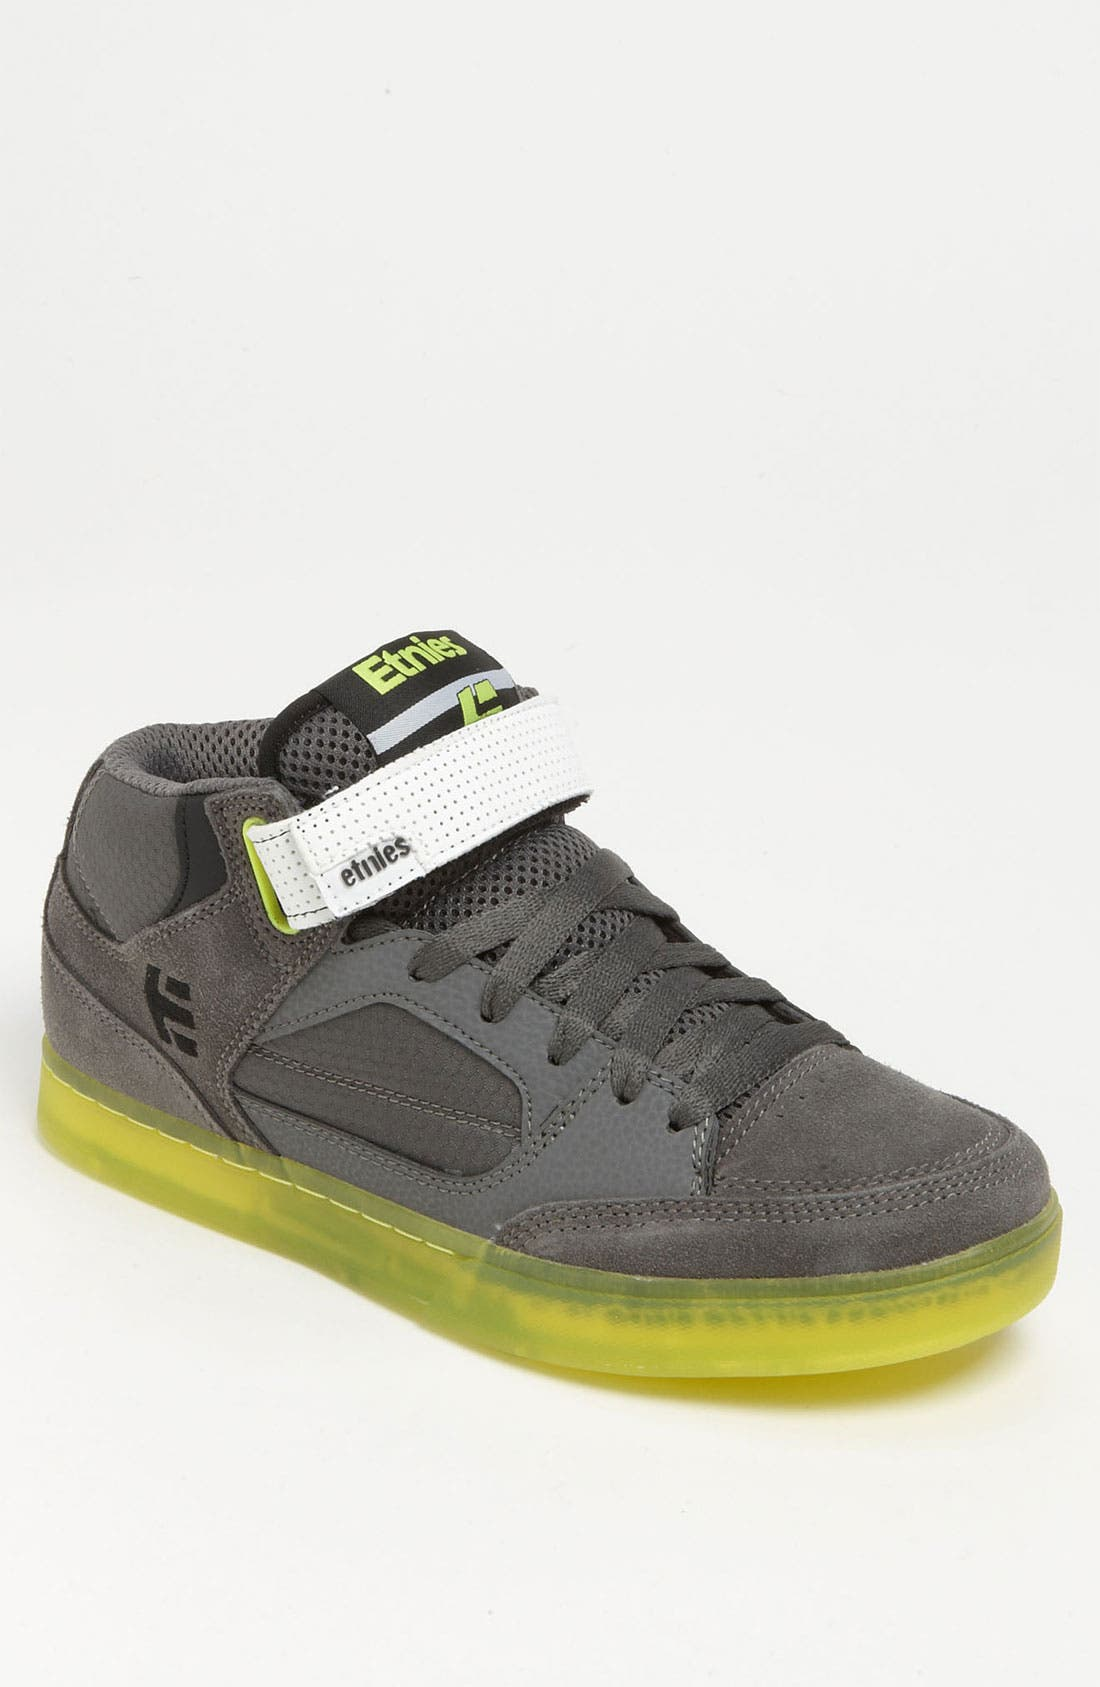 Main Image - Etnies 'Number Mid' Skate Shoe (Men)